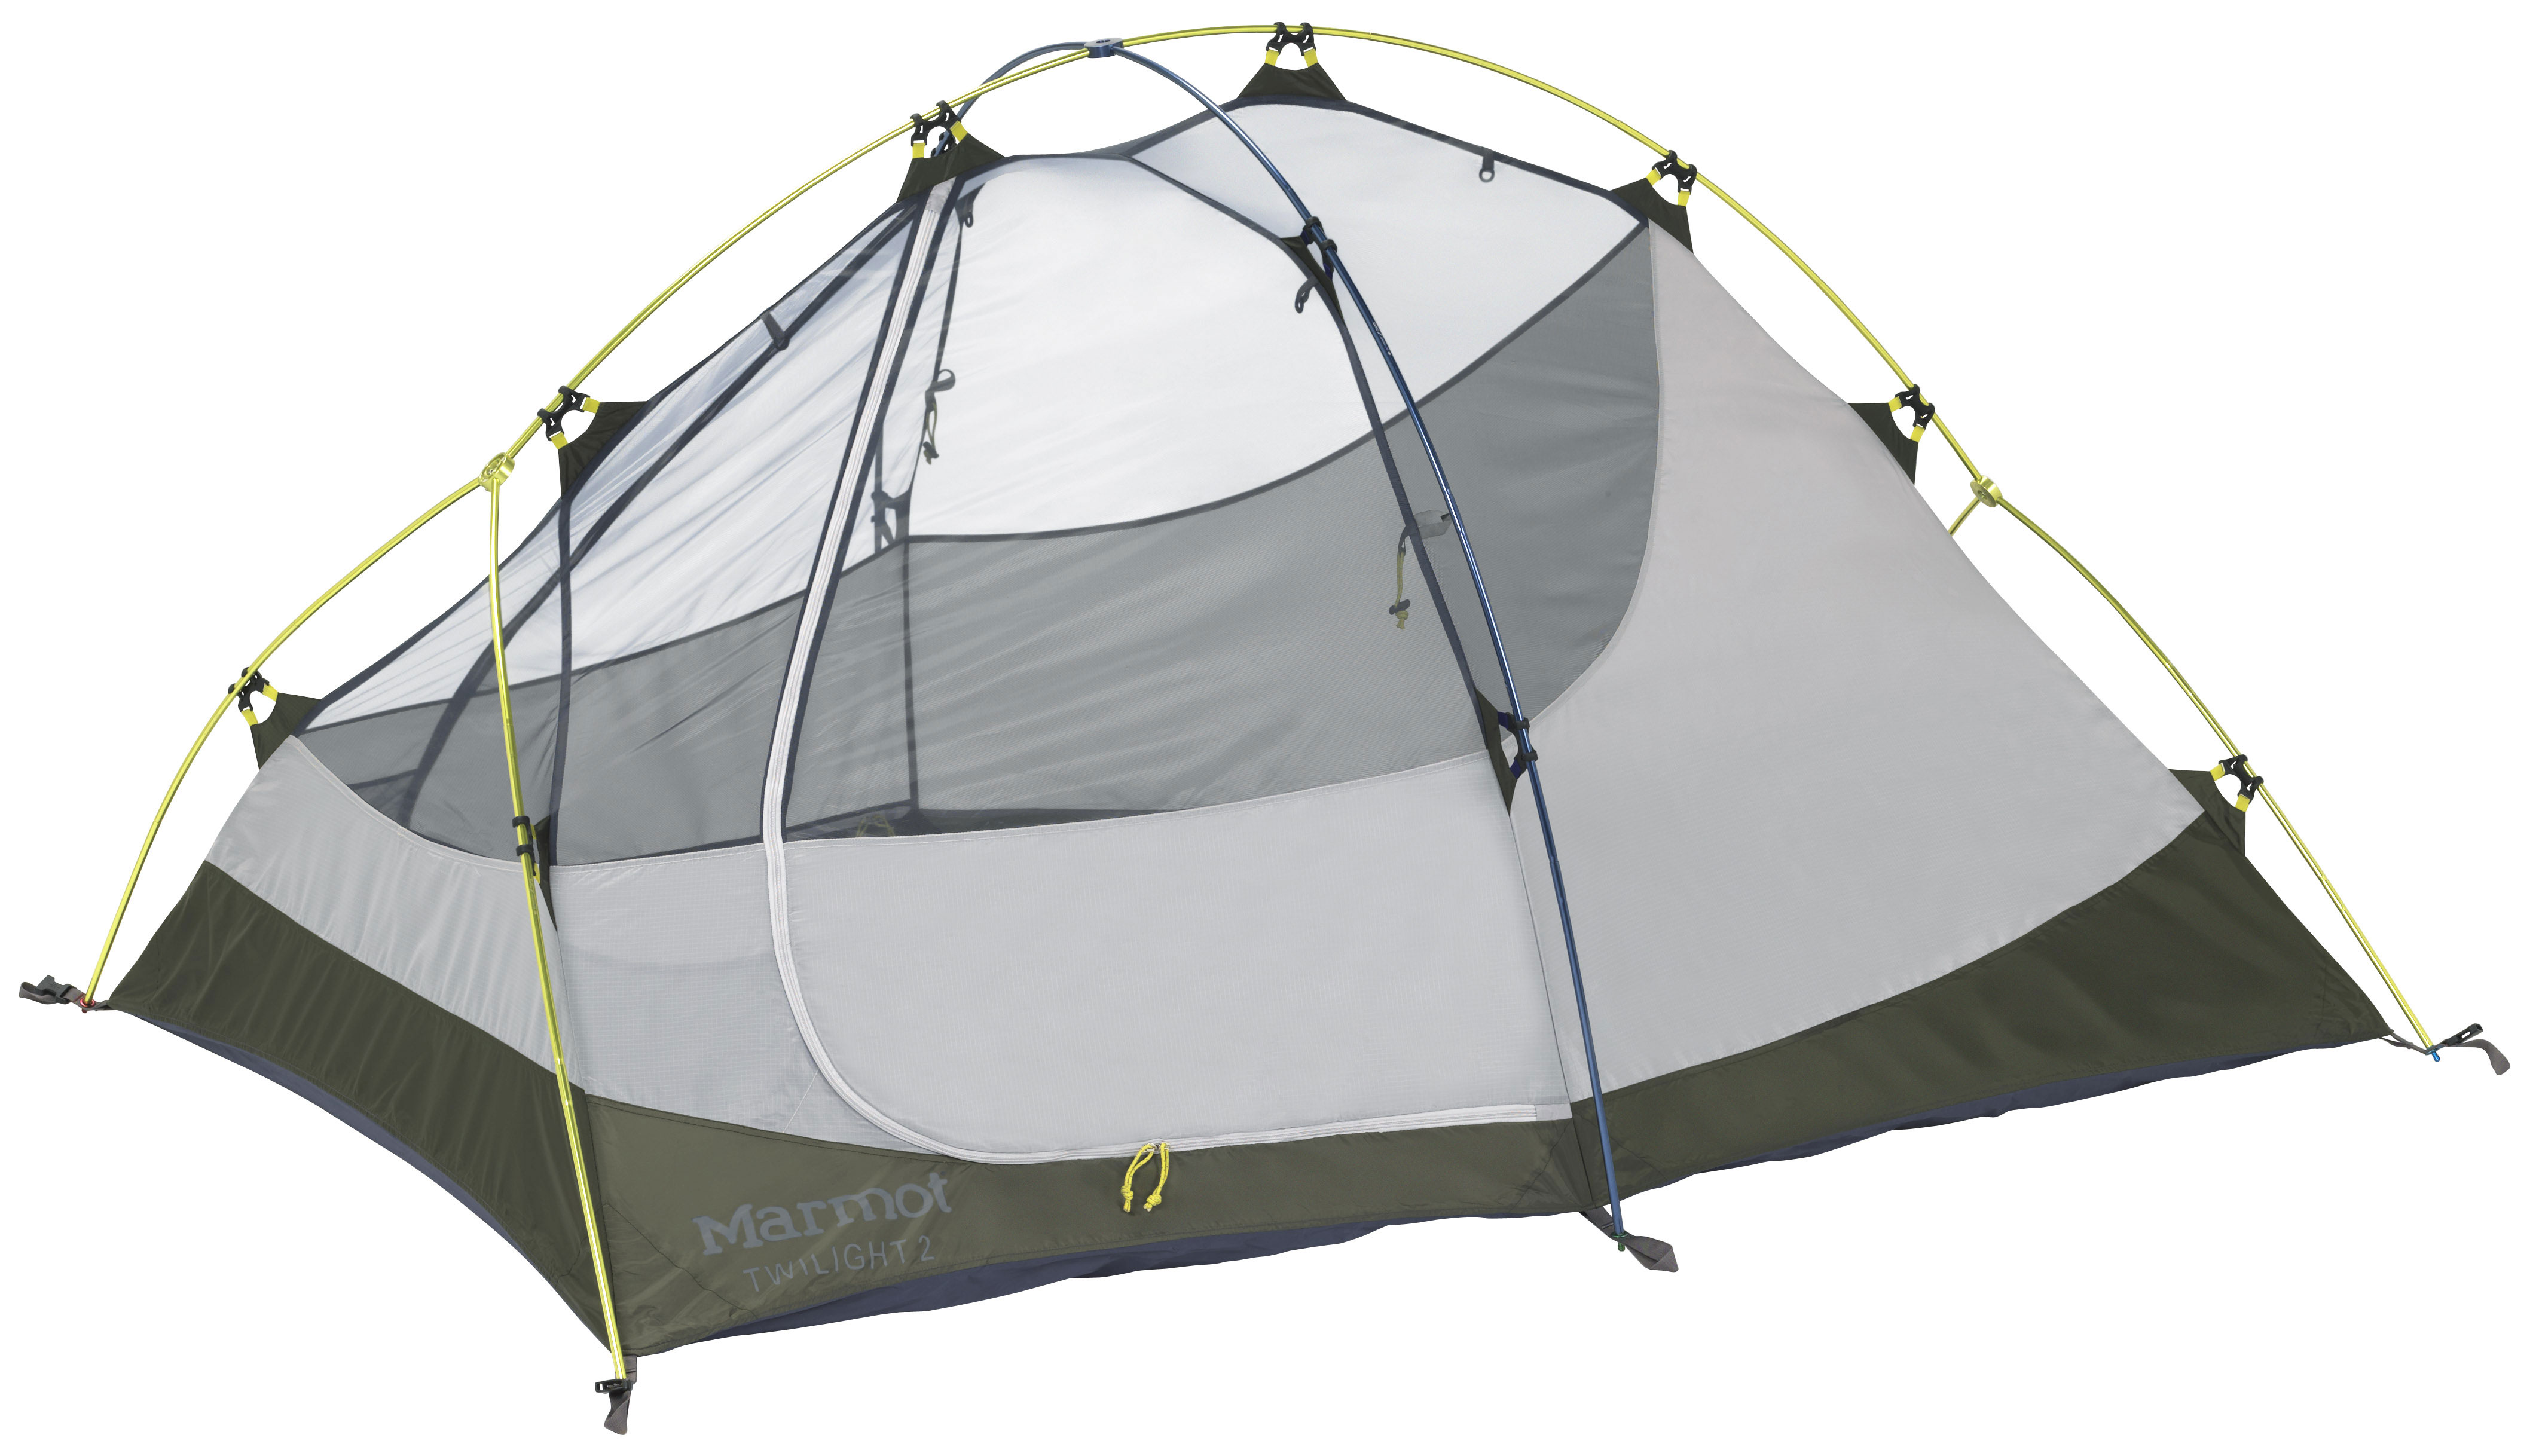 Camp and Hike The Twilight, with its innovative hub pole system, is a roomy, lightweight backpacking tent with a large vestibule for keeping packs and boots dry.Key Features of the Marmot Twilight 2 Person Tent:  Gear Loft and Footprint Included  DAC FeatherLite Poles - Provide Excellent Strength-to-Weight Ratio  Full Coverage Fly  Two Doors / Two Vestibules  Fly Vent for Moisture Dissipation - Adjustable flap for ventilation  Bare Bones Setup - Allows the Fly to be Used by Itself with Footprint to Make a Lightweight, Sturdy Shelter  Catenary Cut Floor - Fully Waterproof Floor with Taped Seams Lifted Off the Ground  Jingle-Free Nylon Zipper Pulls - Promote Undisturbed Sleep  Light-Reflective Points - To Find Your Tent At Night  Snag-Free Zipper Flap - Zip and Un-Zip Without Getting the Zipper Caught  Stake Tape - Stake Tape  Window Weld - Waterproof Window Construction Reduces Weight and Enhances Appearance  Maximum Weight: 5 lbs 9 oz / 2.523 kg  Minimum Weight: 5 lbs 4 oz / 2.381 kg  Dimensions: 40x60x88in / 101.6x152.4x223.5cm  Packed Size: 7 x 17 in / 17.8 x 43.2 cm  Vestibule Area: 21 sq ft / 2 sq m  Tent Poles: 2 / DAC FeatherLite 8.84mm  Floor Area: 34 sq ft / 3.2 sq m  Tent floor Material: 70d 100% Nylon 2000mm W/R, F/R  Tent canopy Material: 68d 100% Polyester Ripstop,F/R  Tent fly Material: 68d 100% Polyester Ripstop 1800mm, W/R, F/R - $250.95